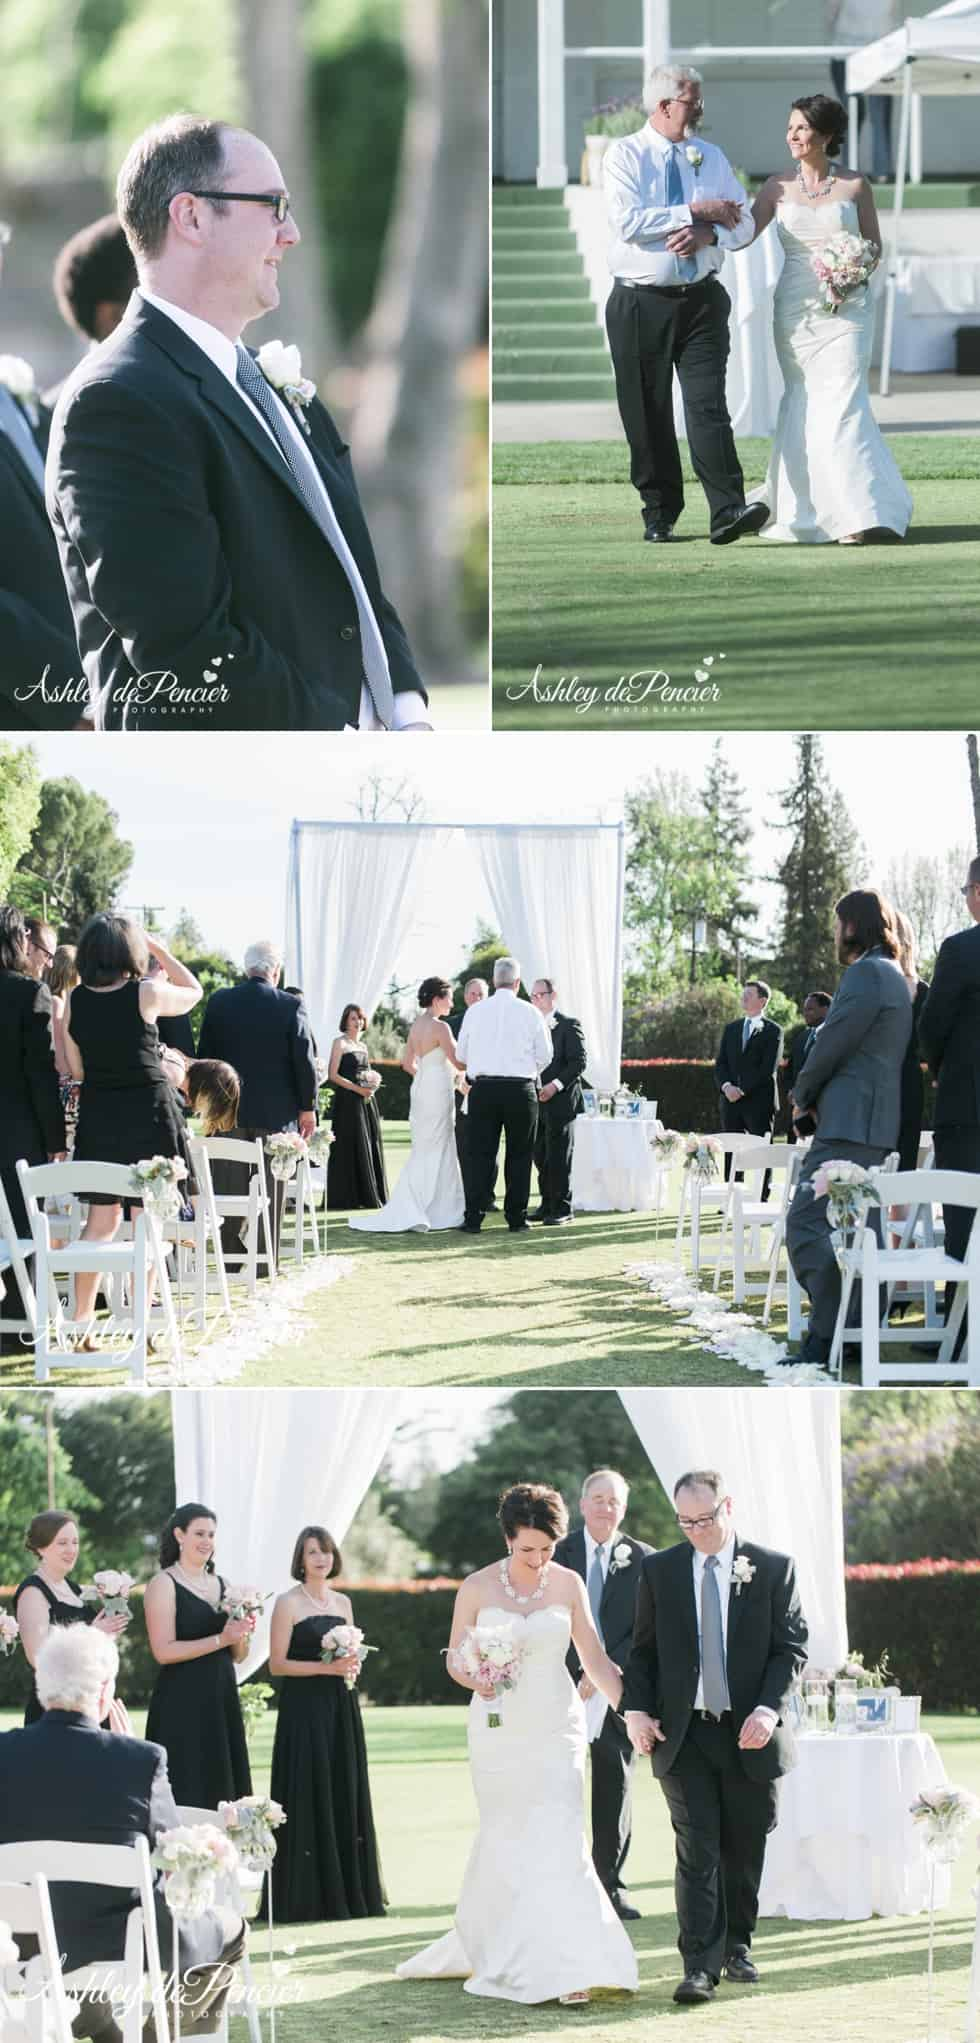 StockdaleCountryClubWeddingBakersfield 14